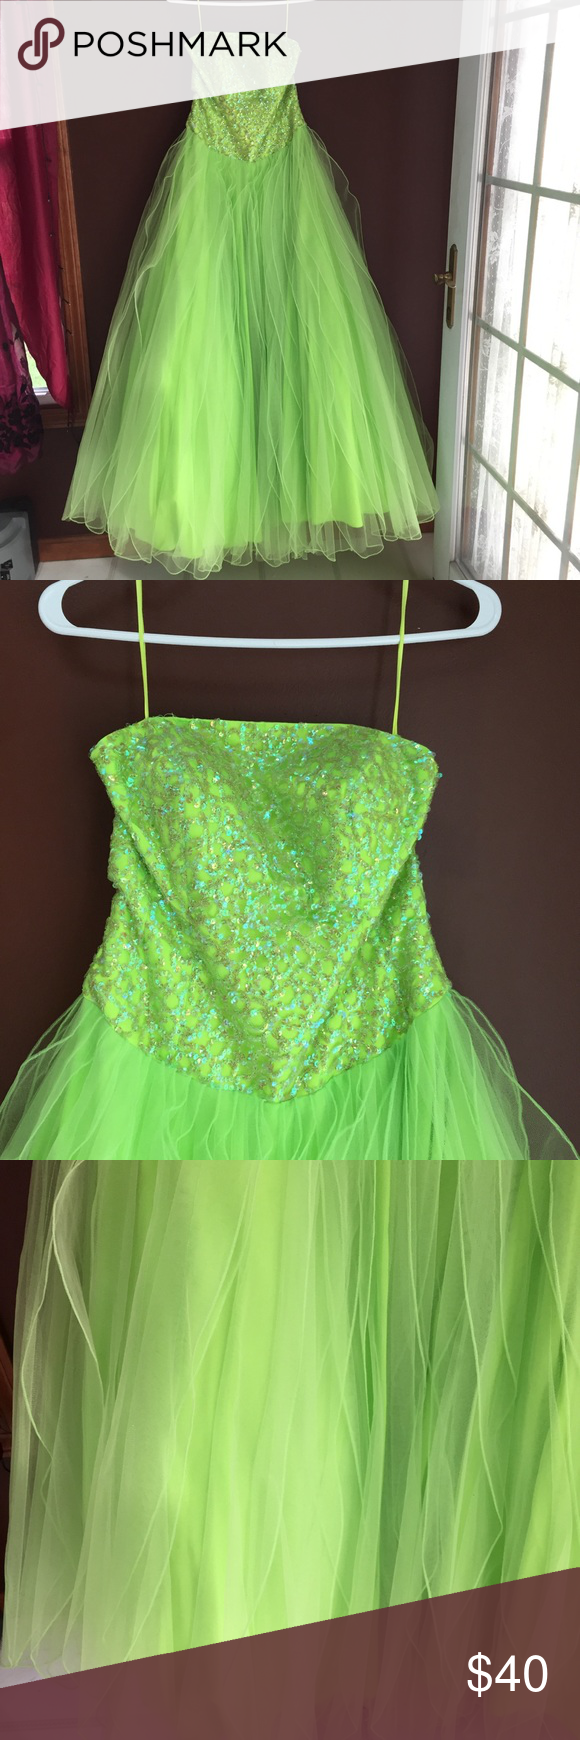 Neon green very full skirted princess dress neon green ball gowns